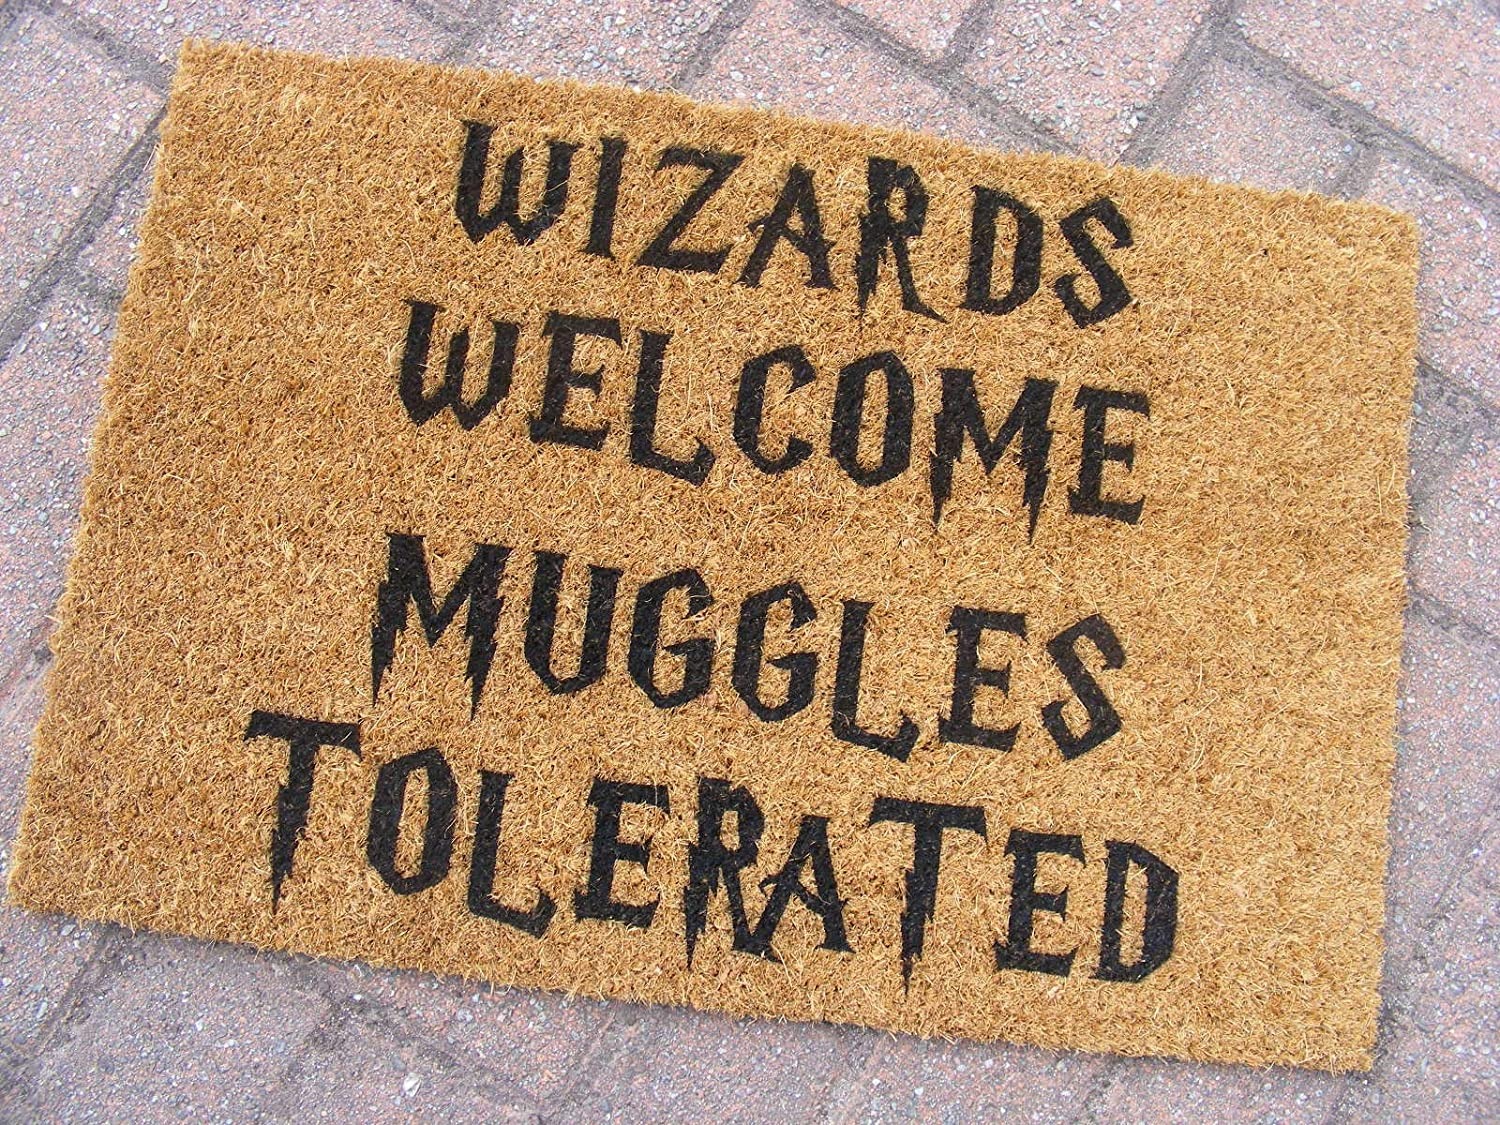 Wizards Welcome Muggles Tolerated Door Mat-Glasses Harry Potter Hogwarts